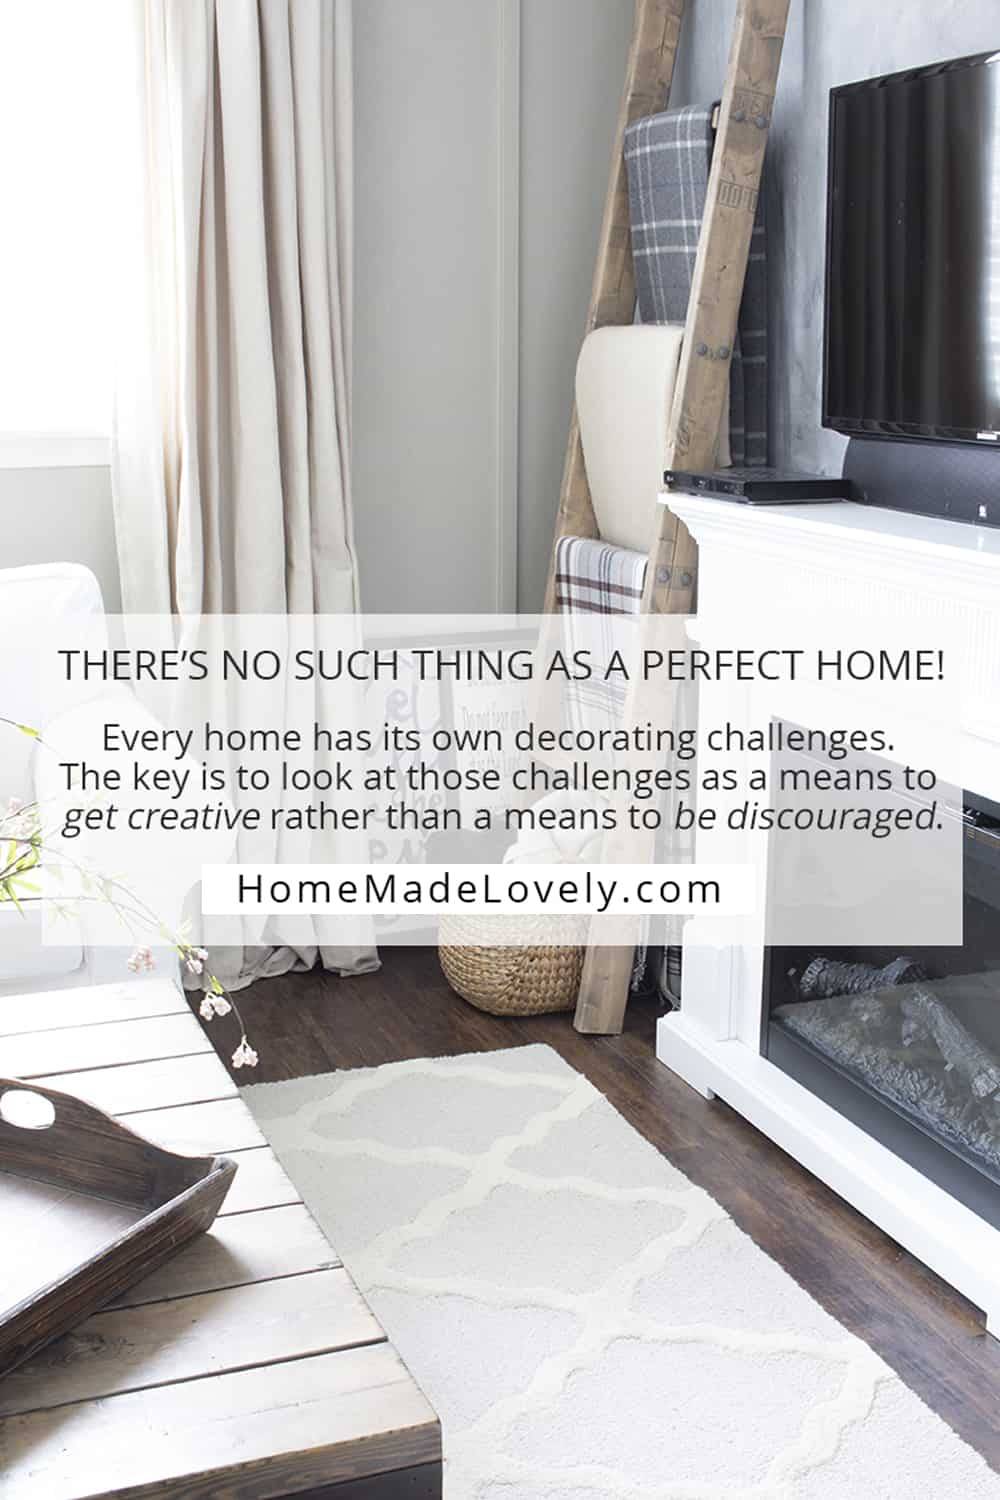 There's no such thing as a perfect home! Every home has its own decorating challenges. The key is to look at those challenges as a means to get creative rather than a means to be discouraged. Shannon Acheson. www.akadesign.ca